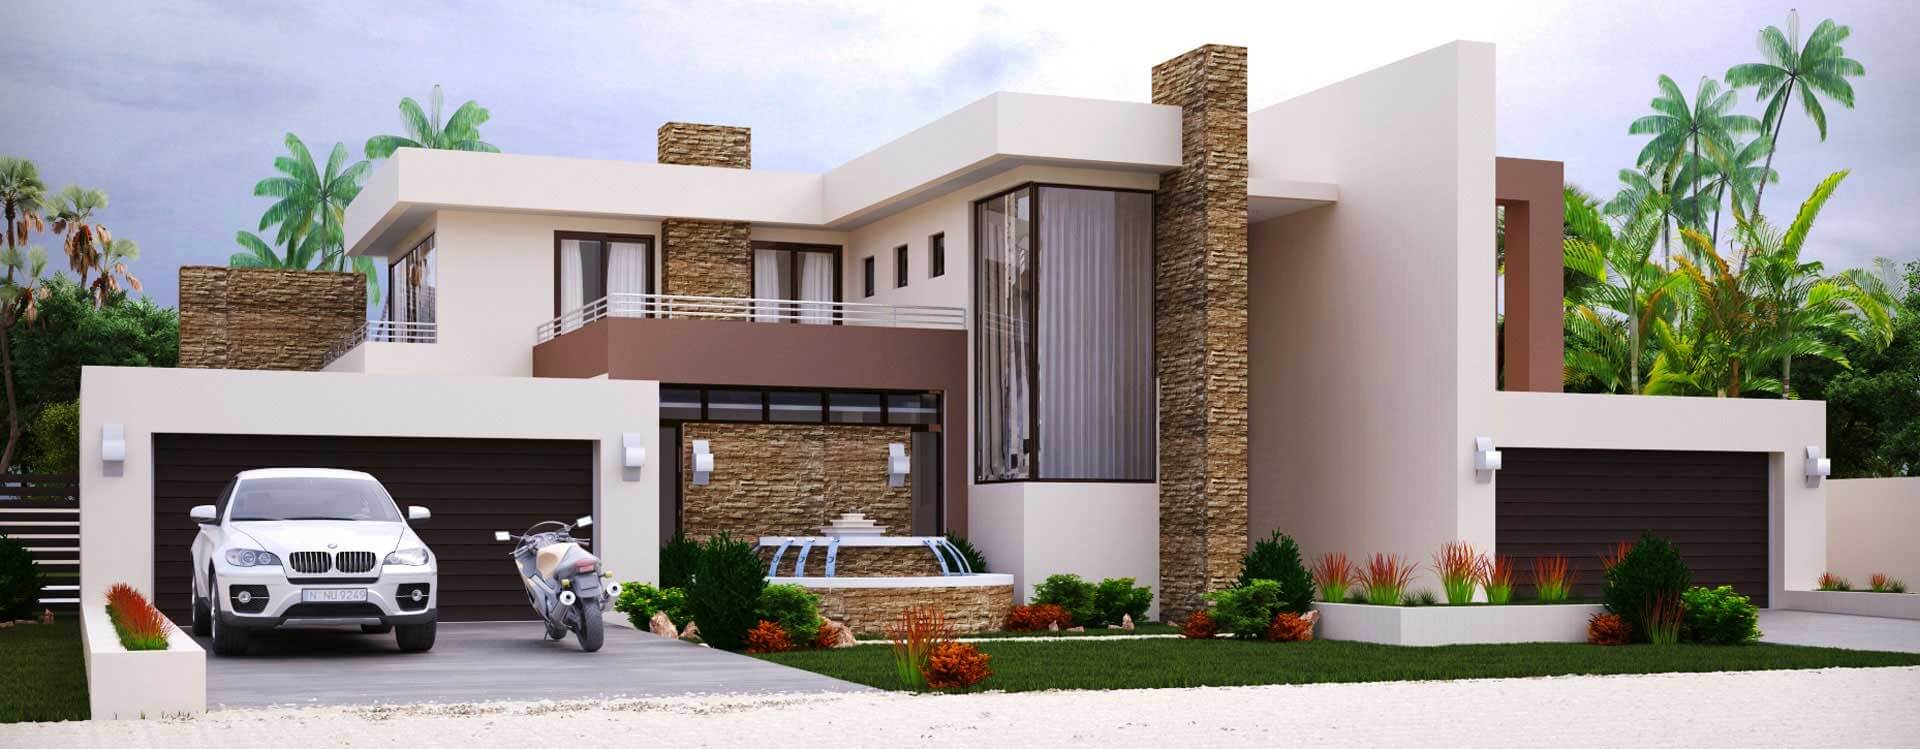 House Plans South Africa, South African House Designs, House Designs In  South Africa,